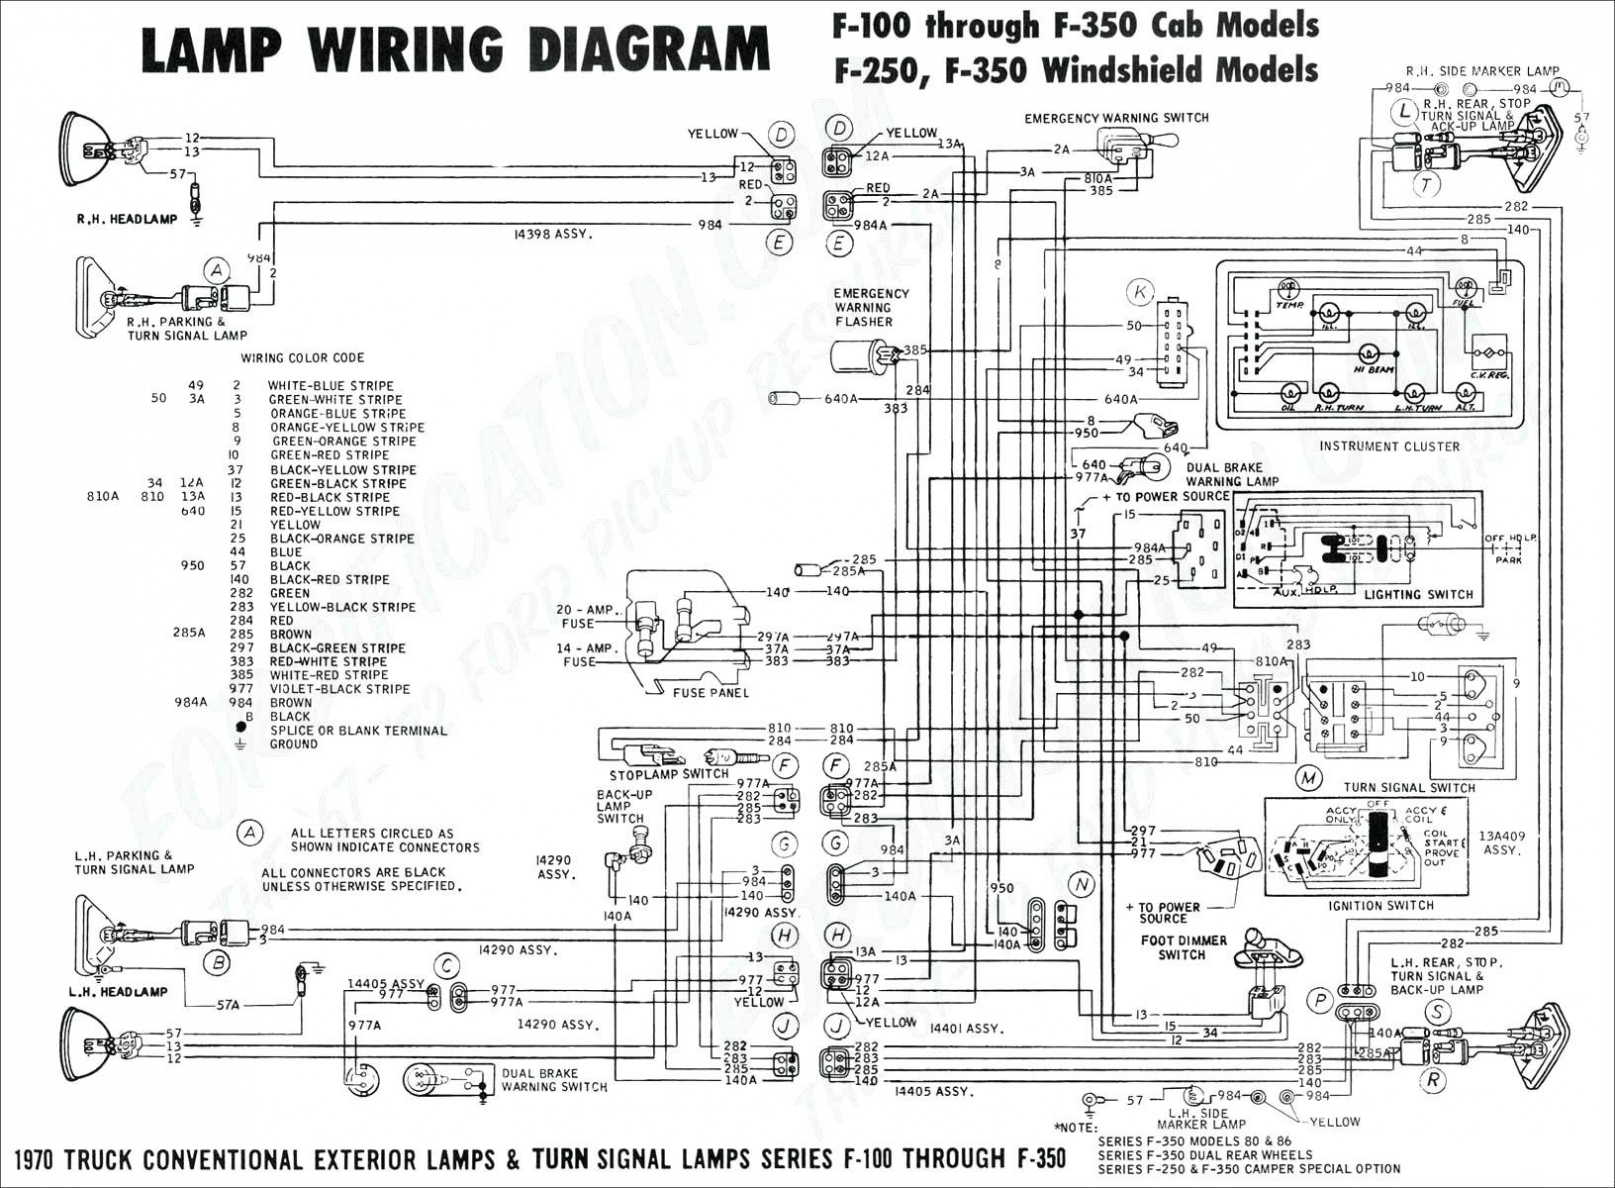 Jandy Actuator Wiring Diagram | Machine Repair Manual on